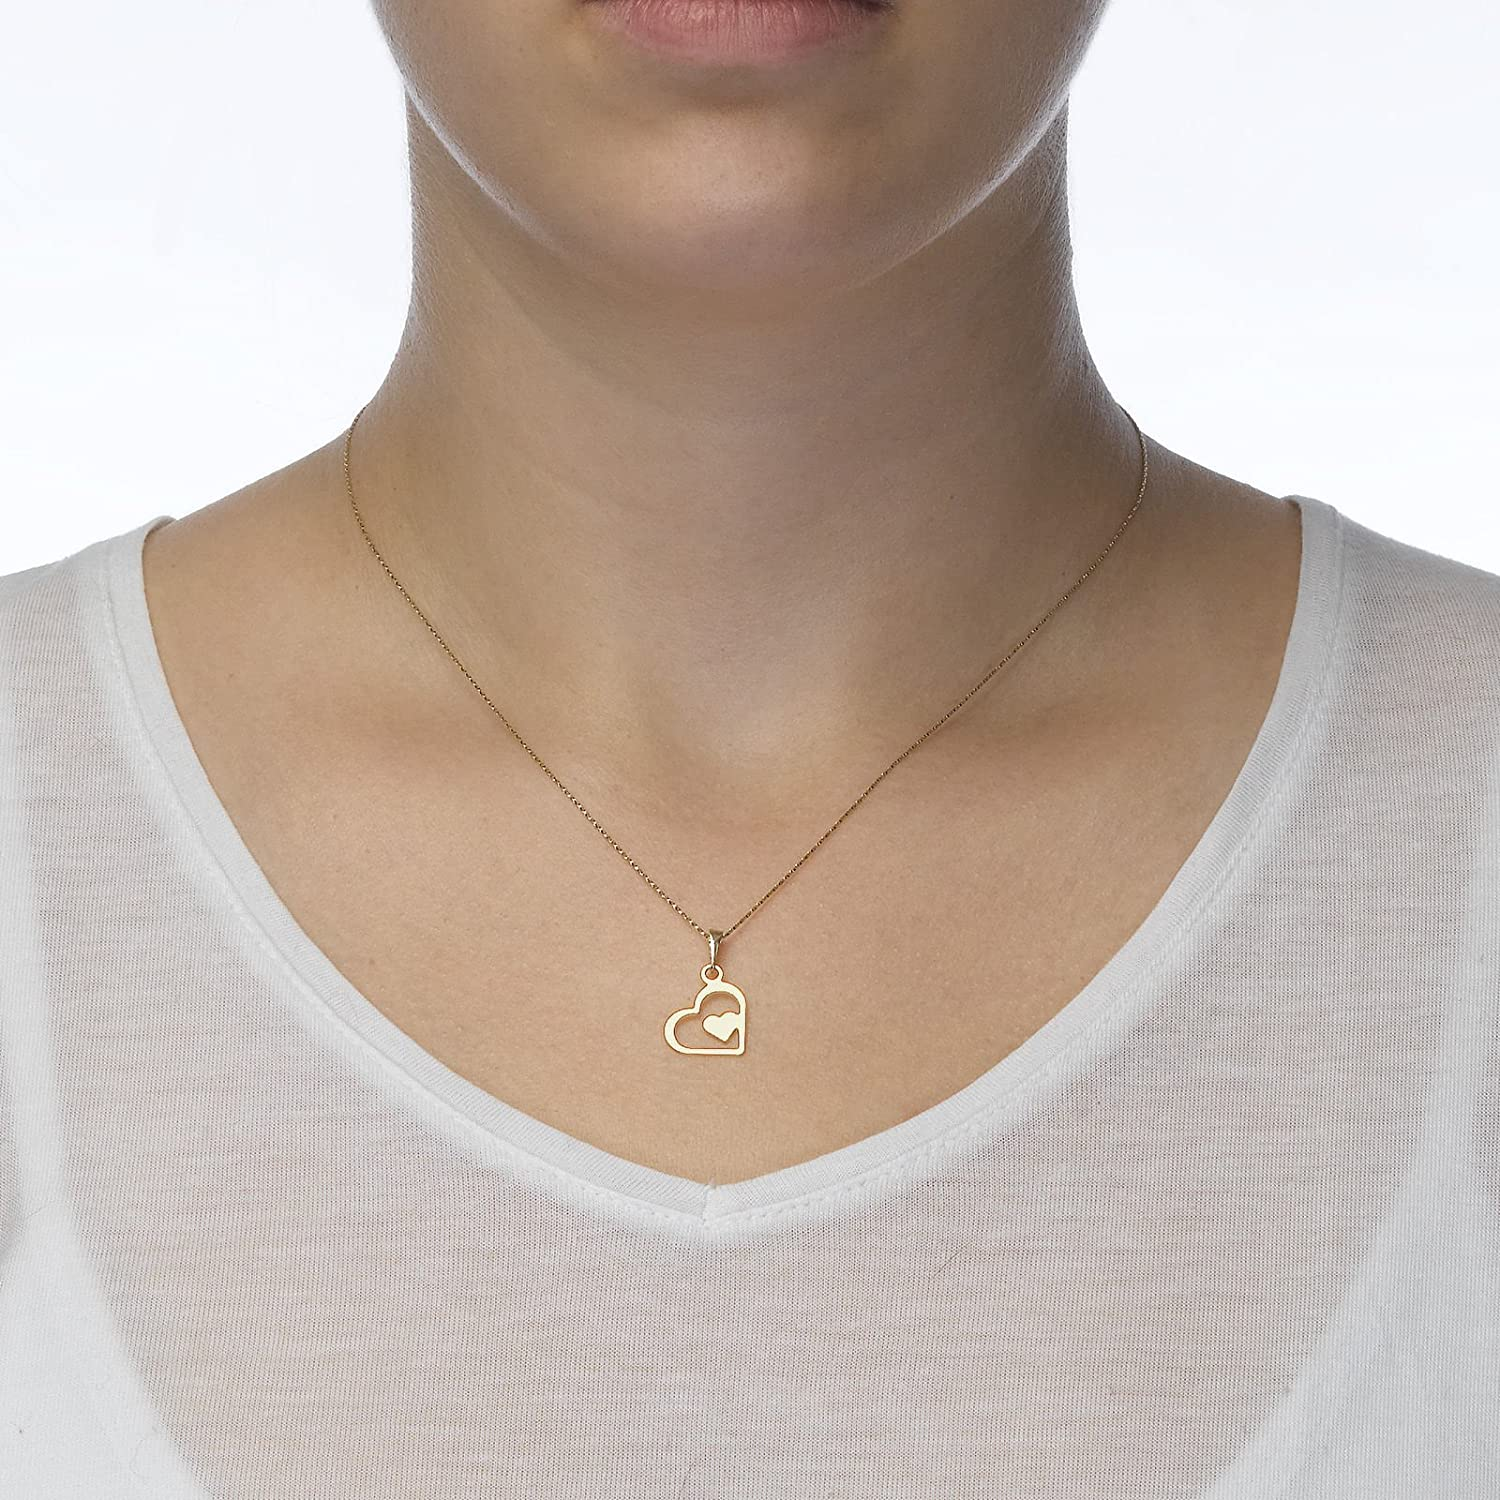 14K Yellow Gold Wondrous Heart Pendant With Necklace